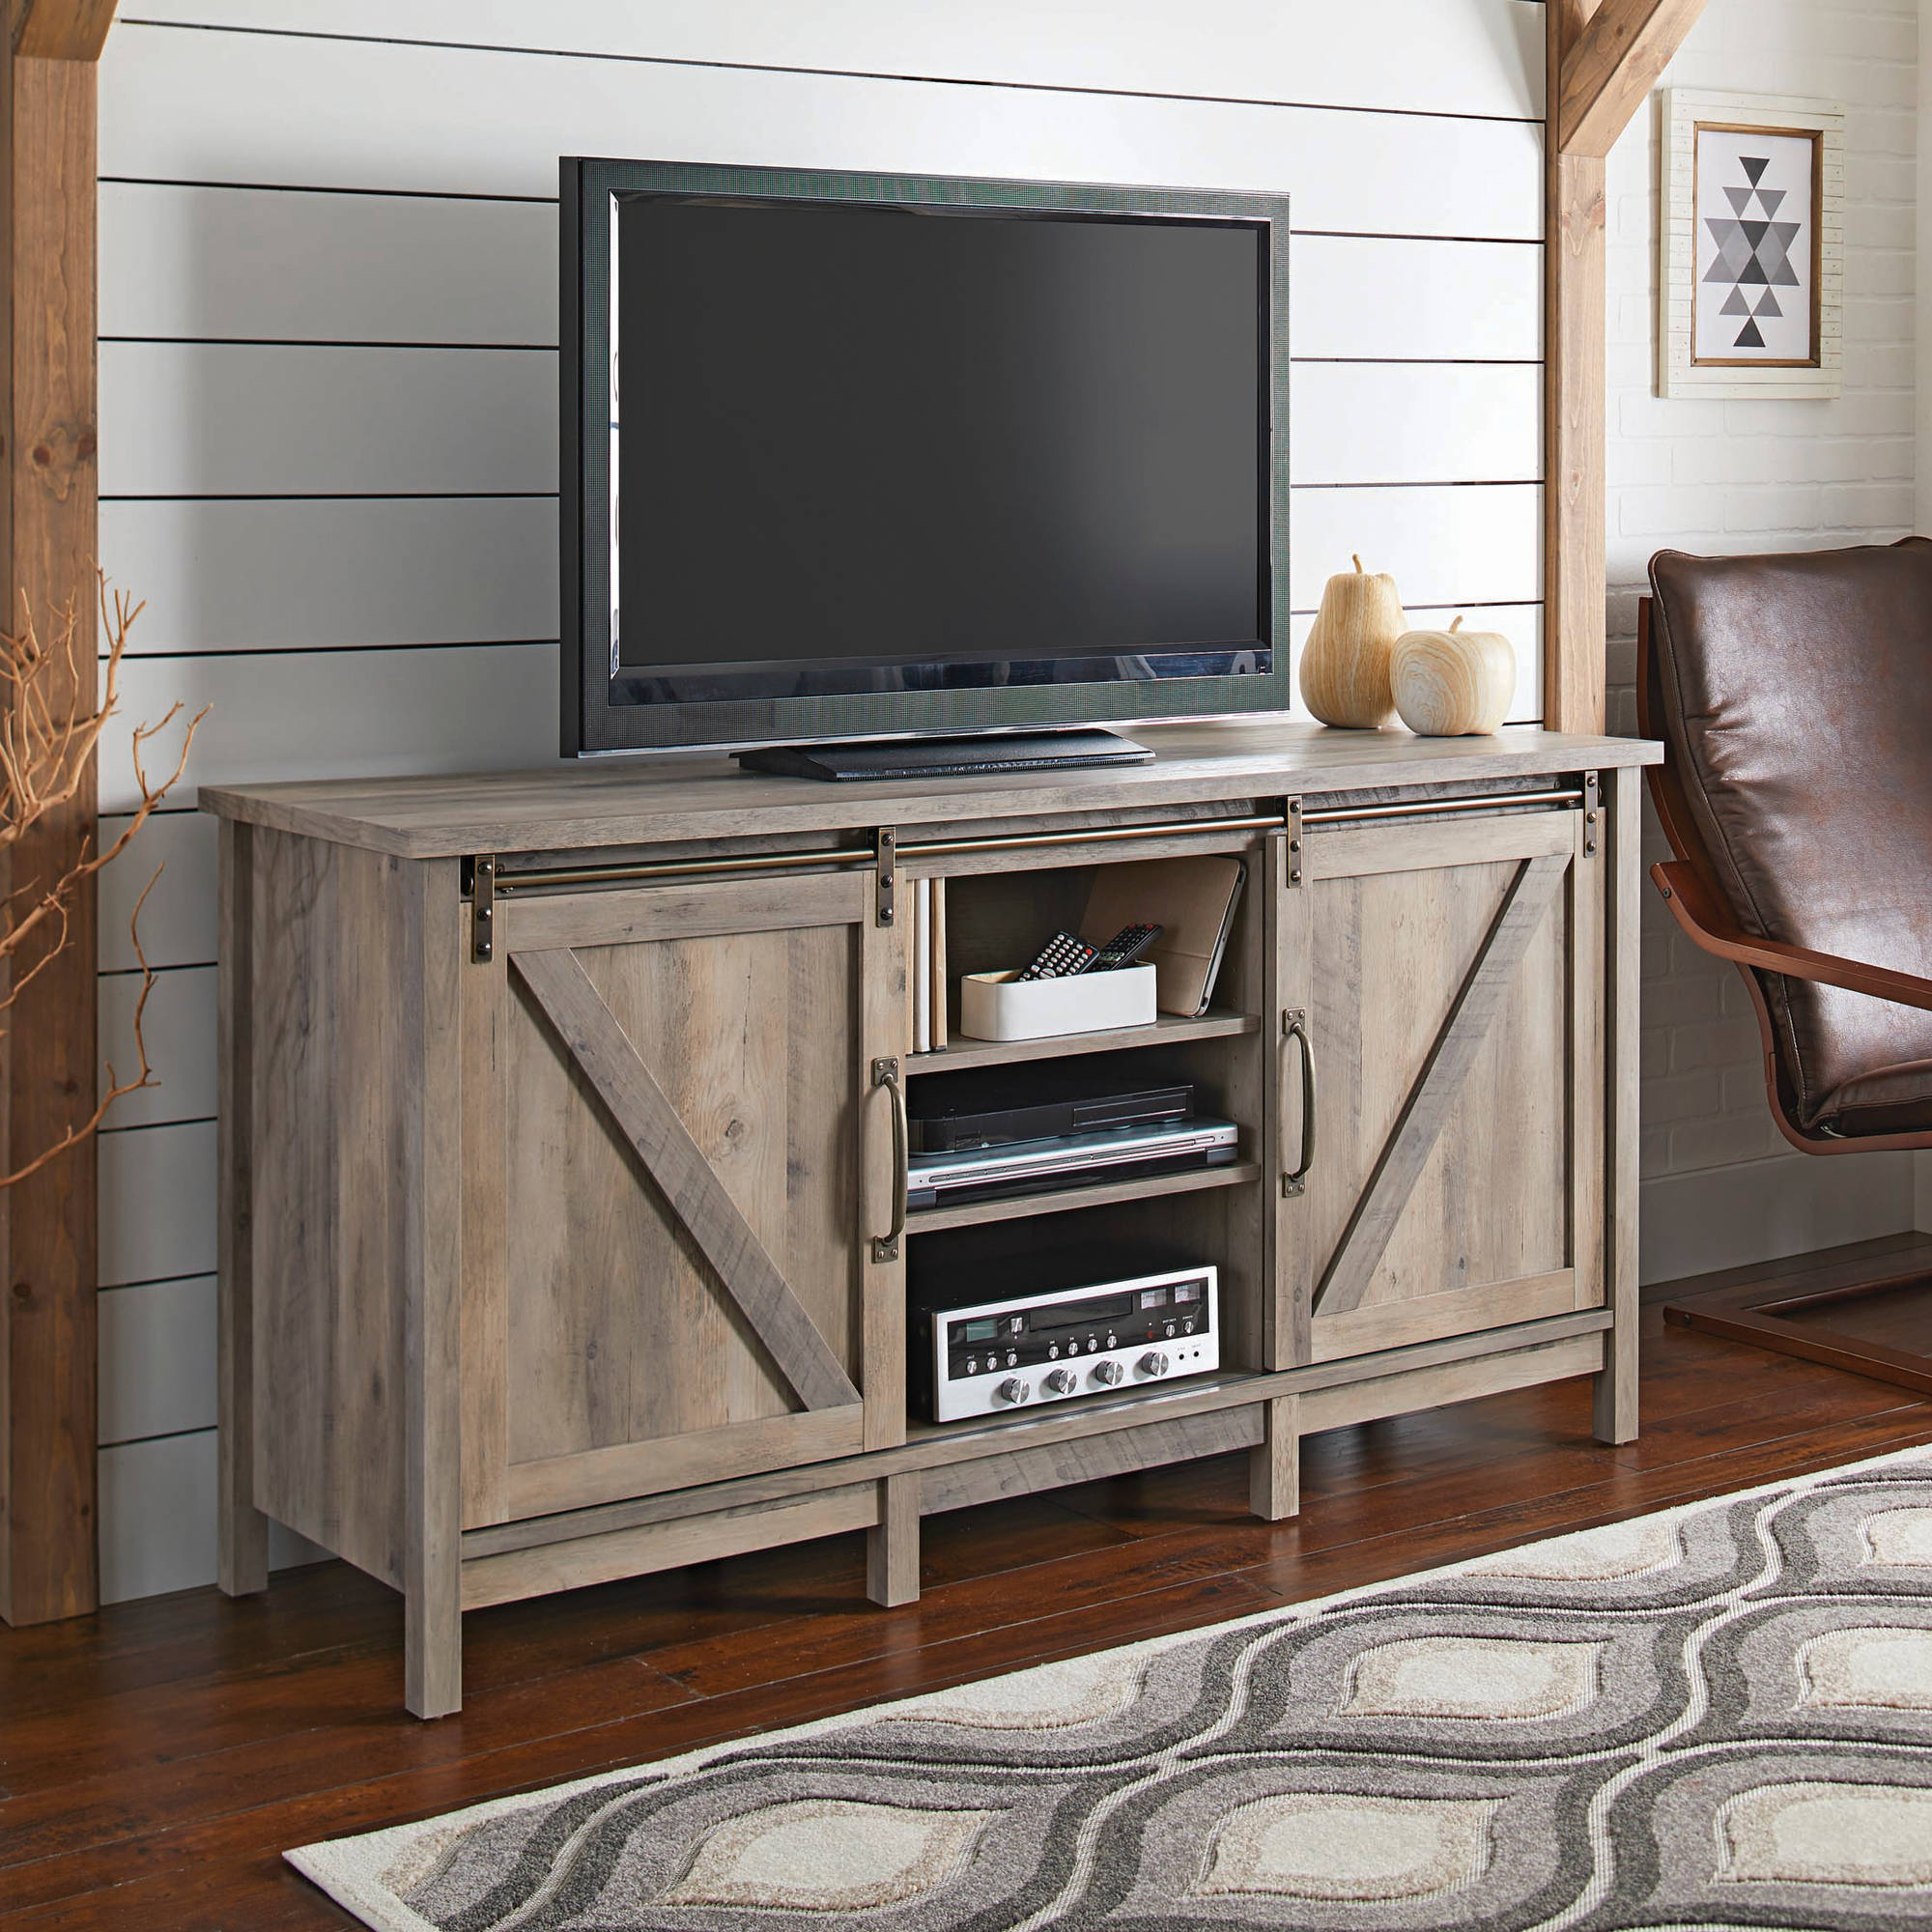 Better Homes & Gardens Modern Farmhouse Tv Stand For Tvs Within Better Homes & Gardens Modern Farmhouse Tv Stands With Multiple Finishes (View 1 of 31)